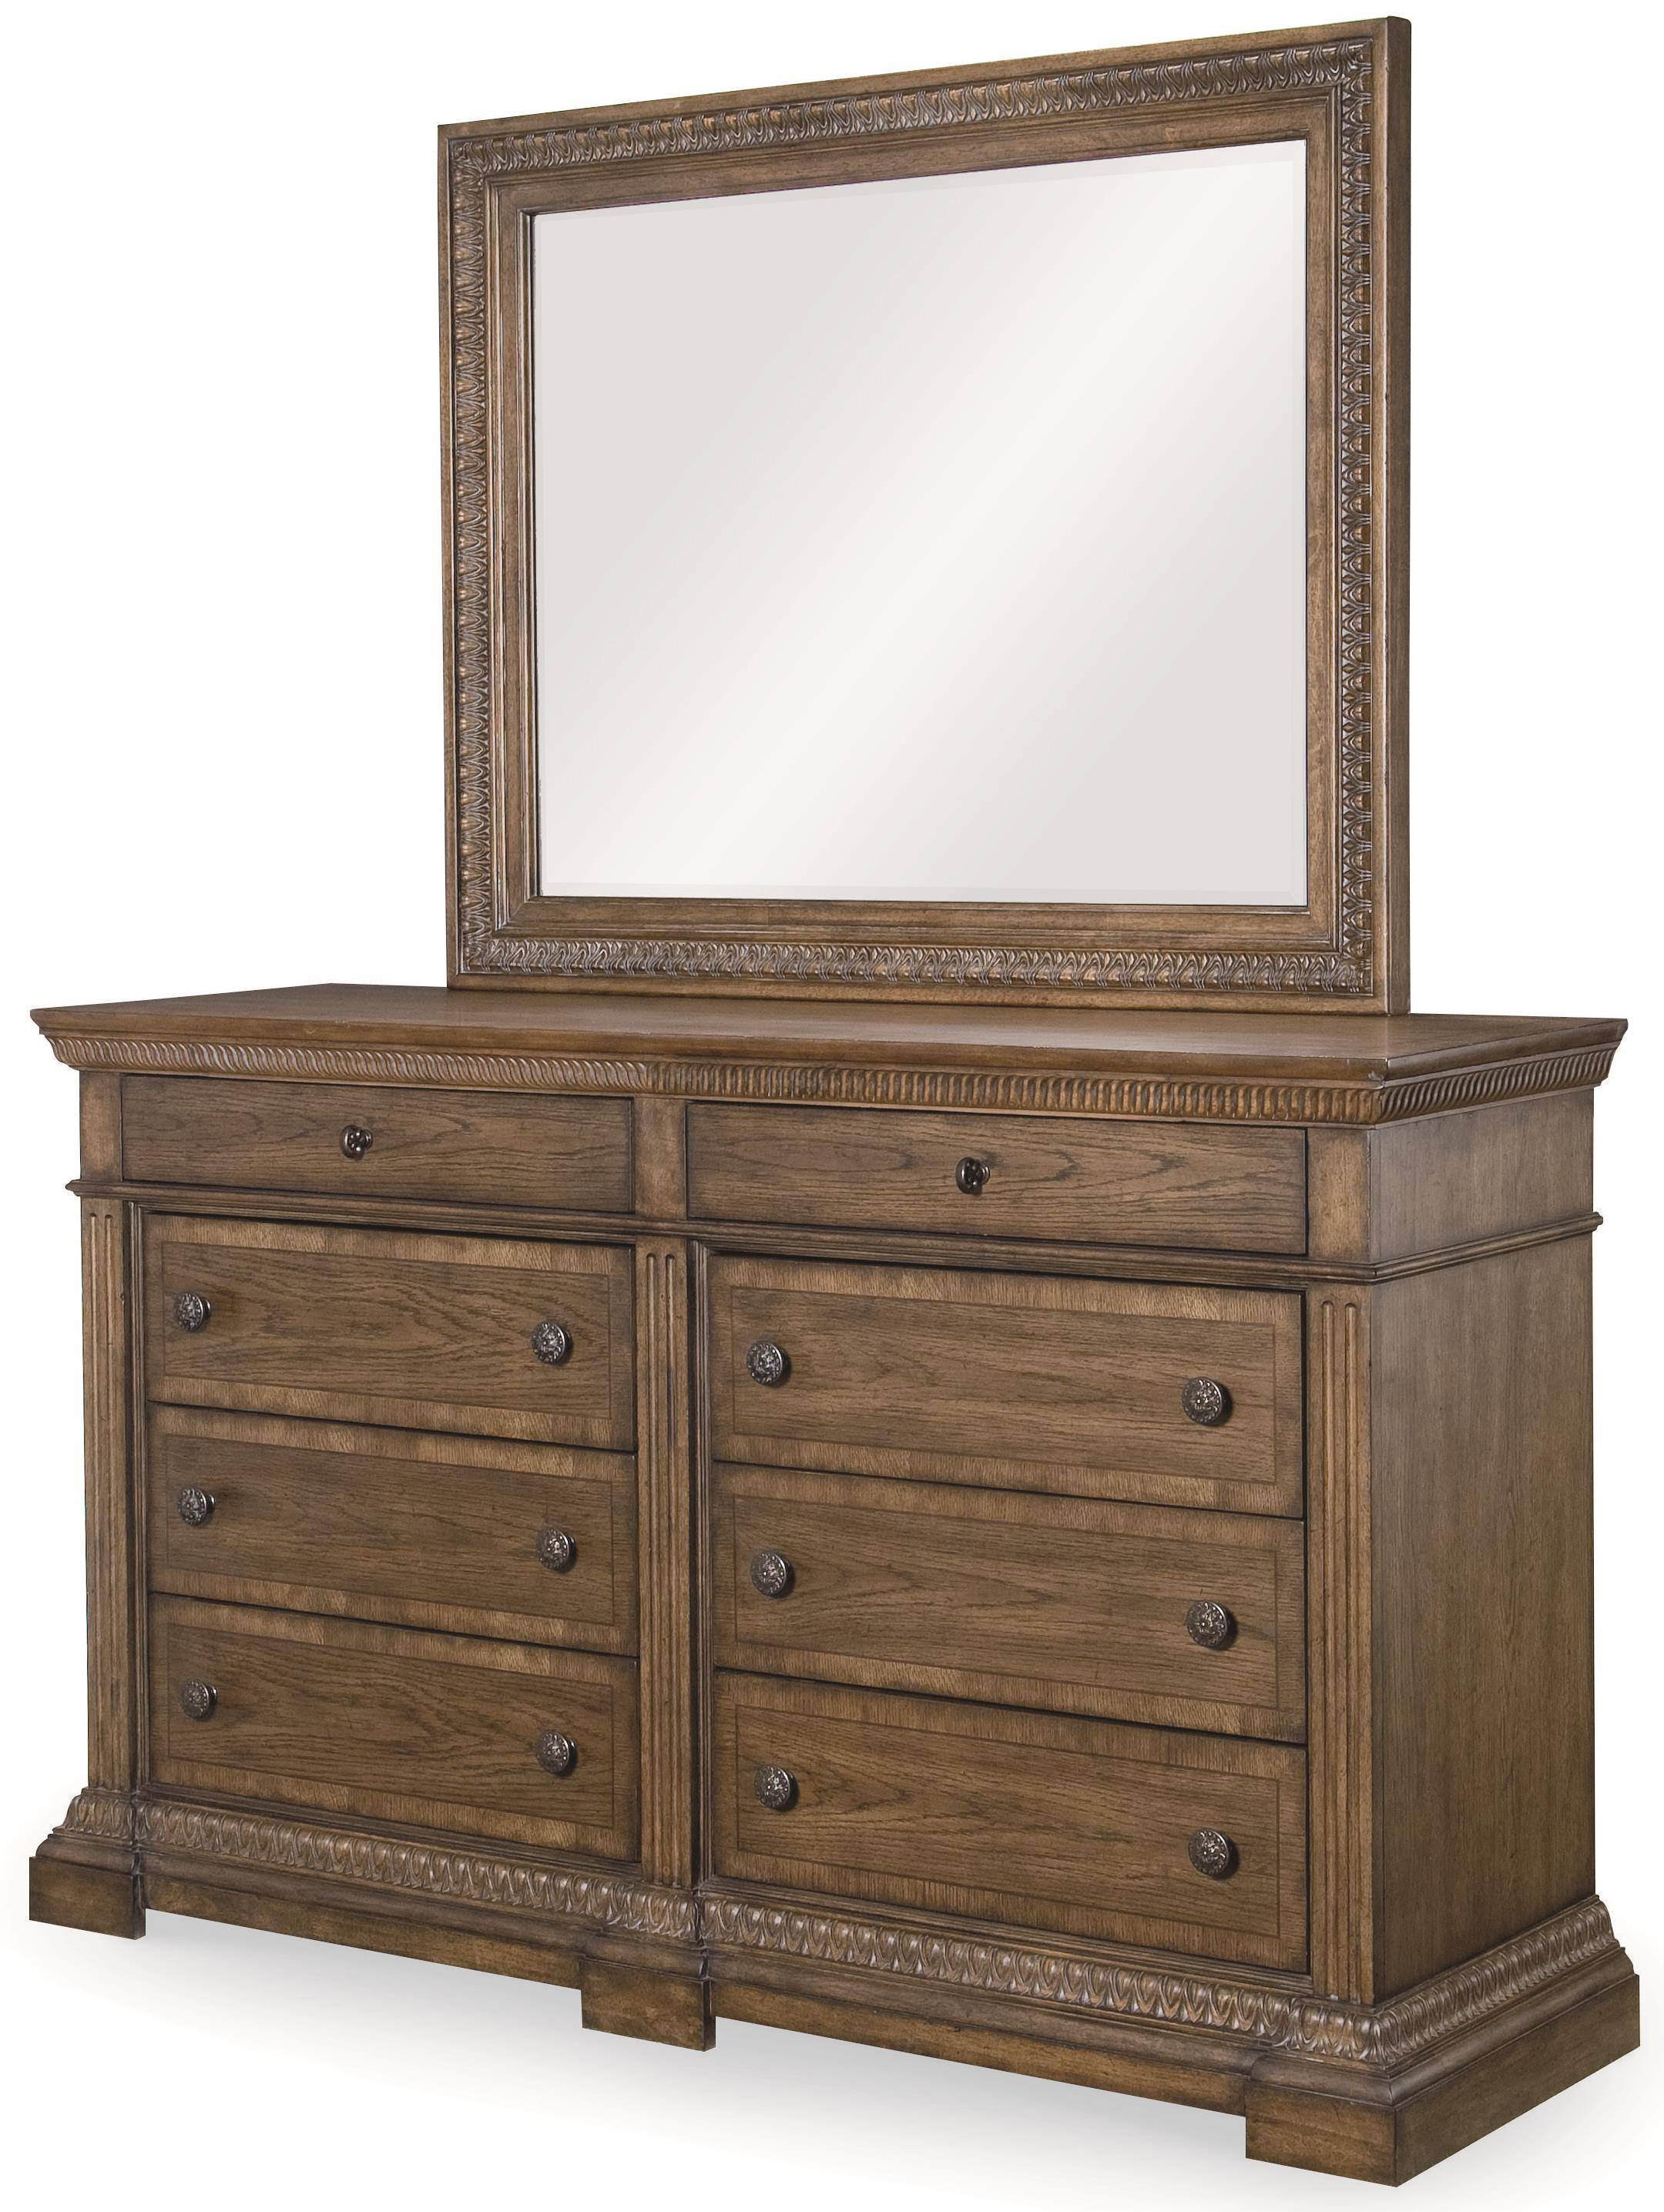 Legacy Classic Renaissance Dresser and Mirror Combo - Item Number: 5500-1200+0100